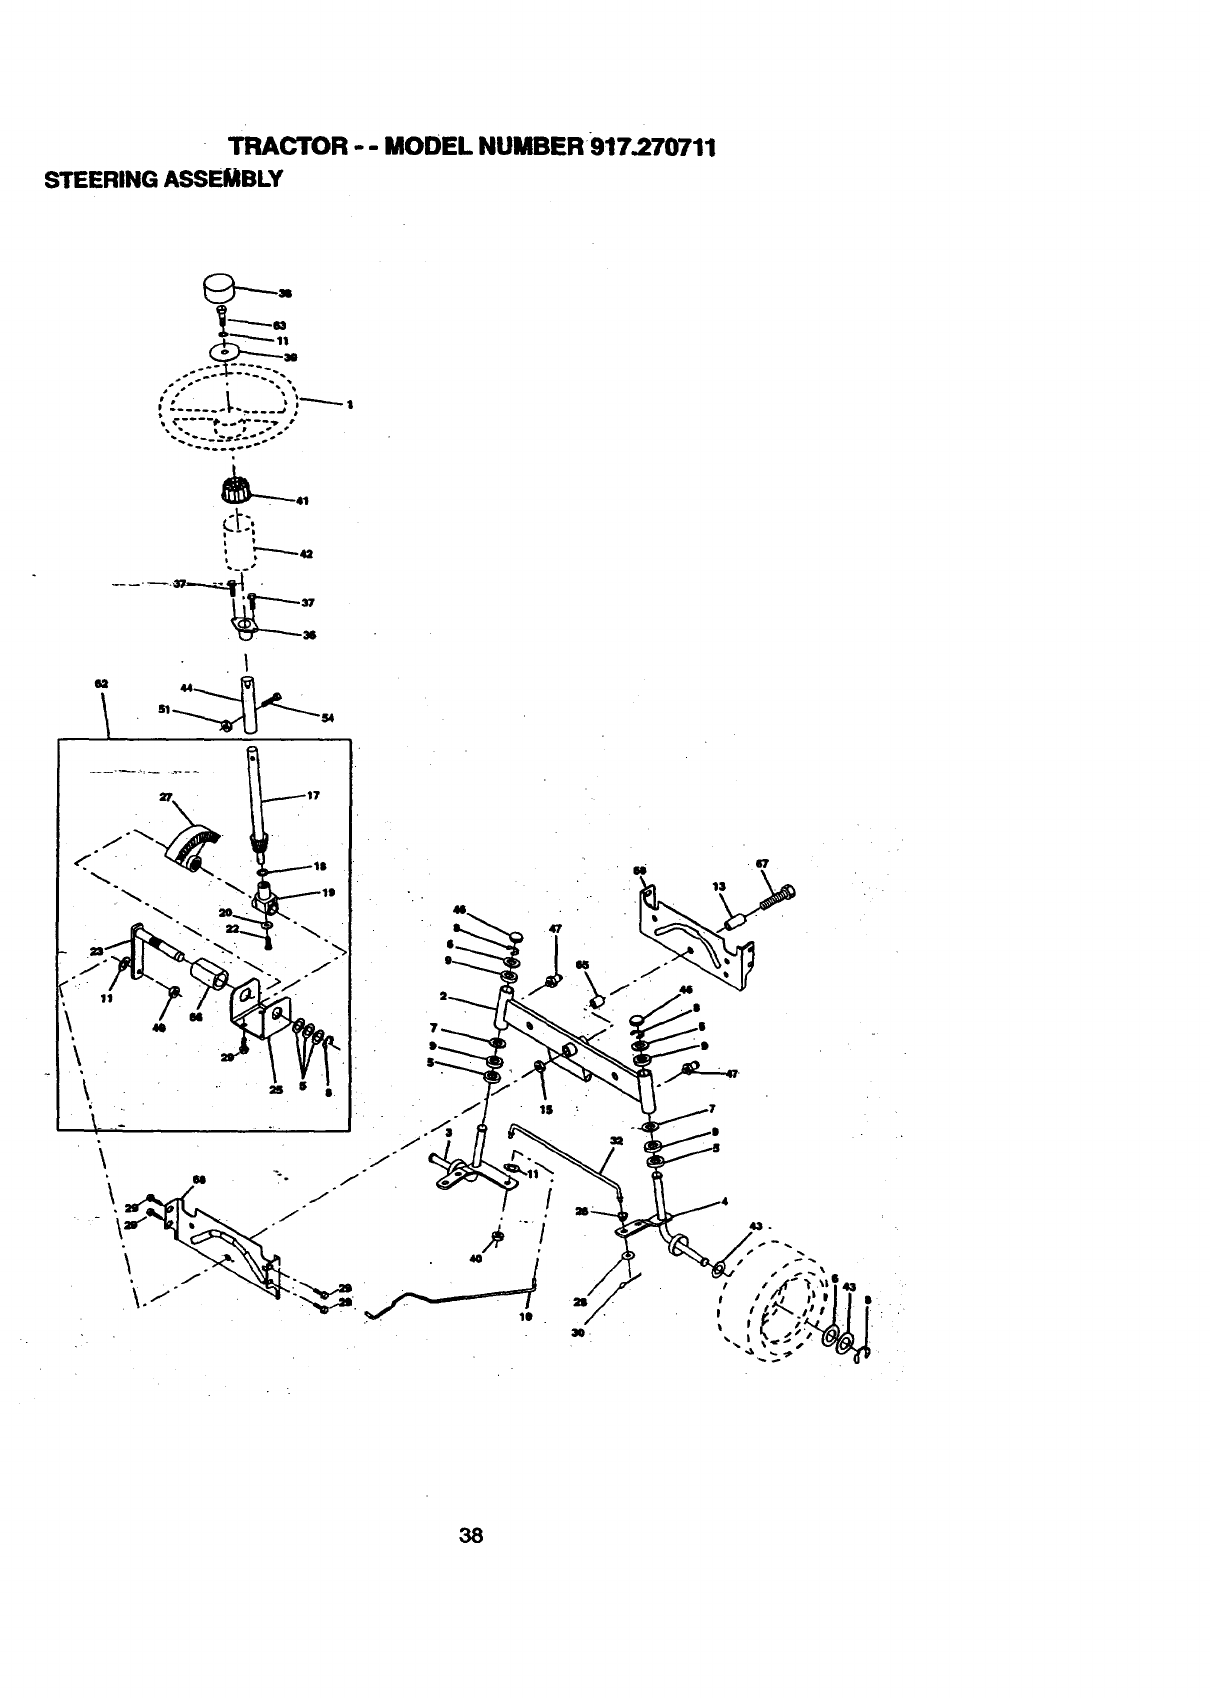 Page 38 of Craftsman Lawn Mower 917.270711 User Guide